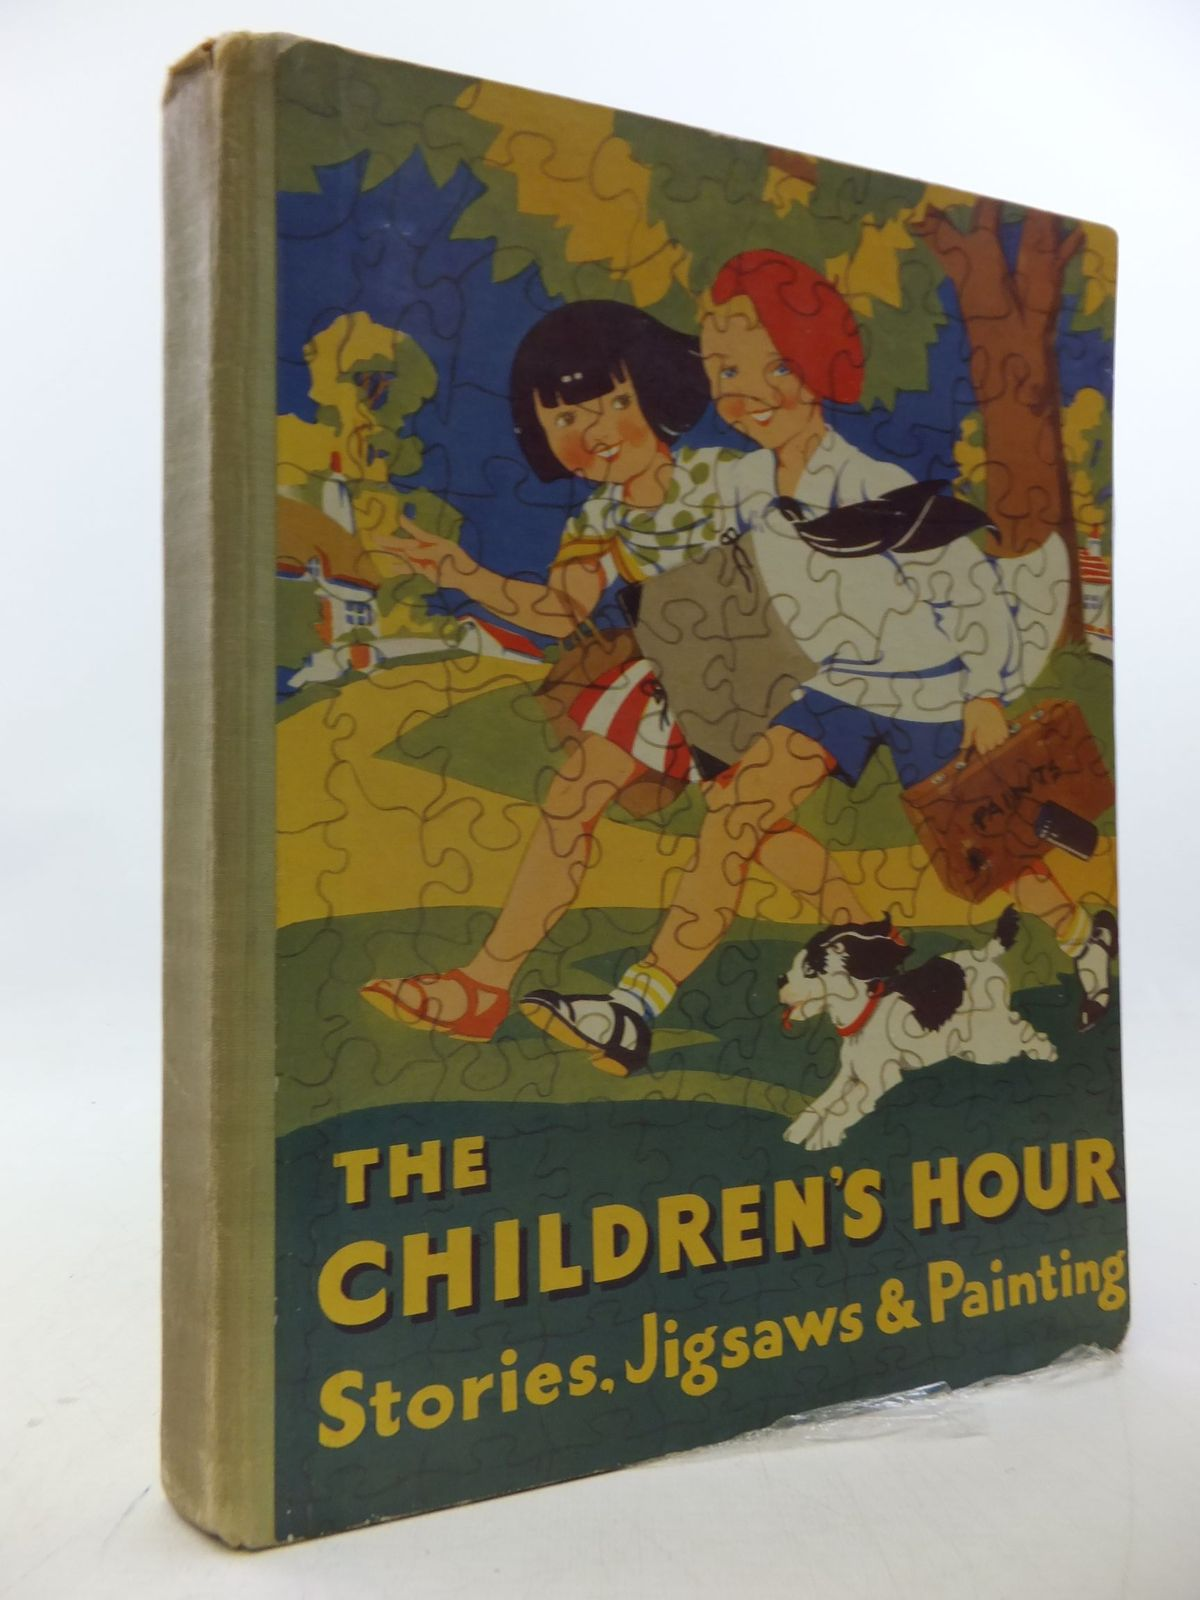 Photo of THE CHILDREN'S HOUR STORIES, JIGSAWS AND PAINTING written by Perrault, Charles<br />Milne, A.A.<br />Crompton, Richmal<br />et al, illustrated by Cloke, Rene<br />et al., published by Daily Express (STOCK CODE: 2112942)  for sale by Stella & Rose's Books